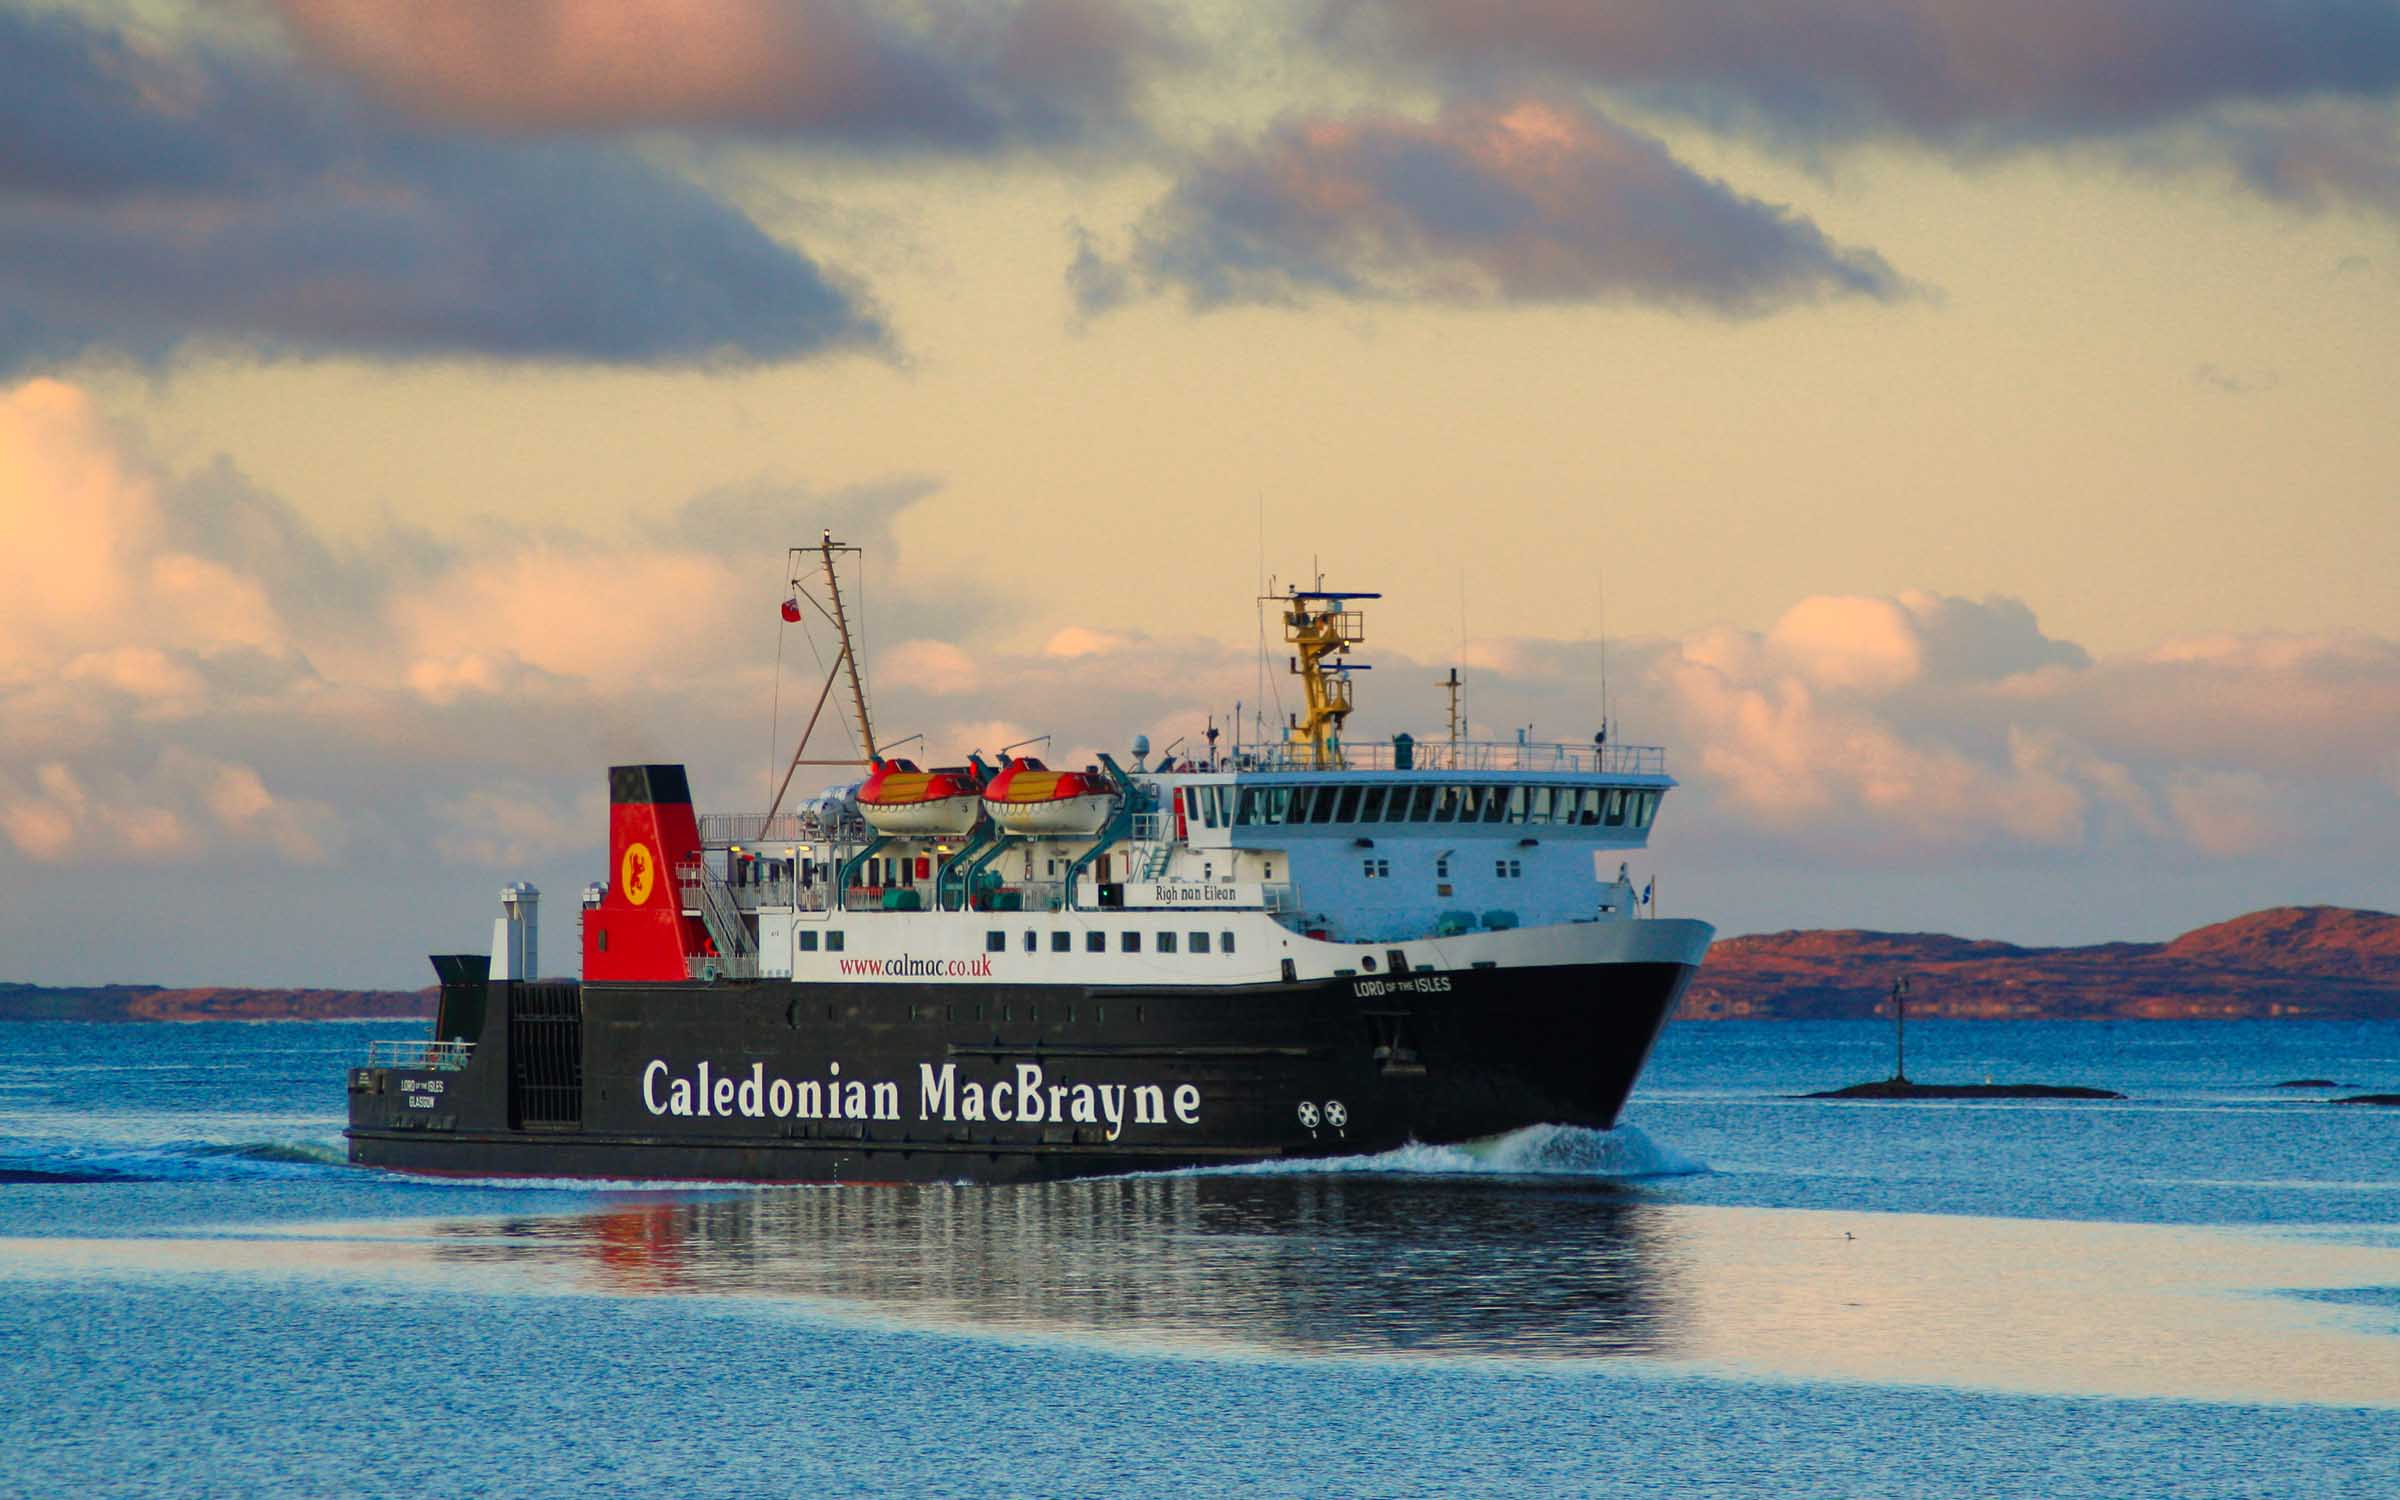 Lord of the Isles in West Loch Tarbert (Ships of CalMac)